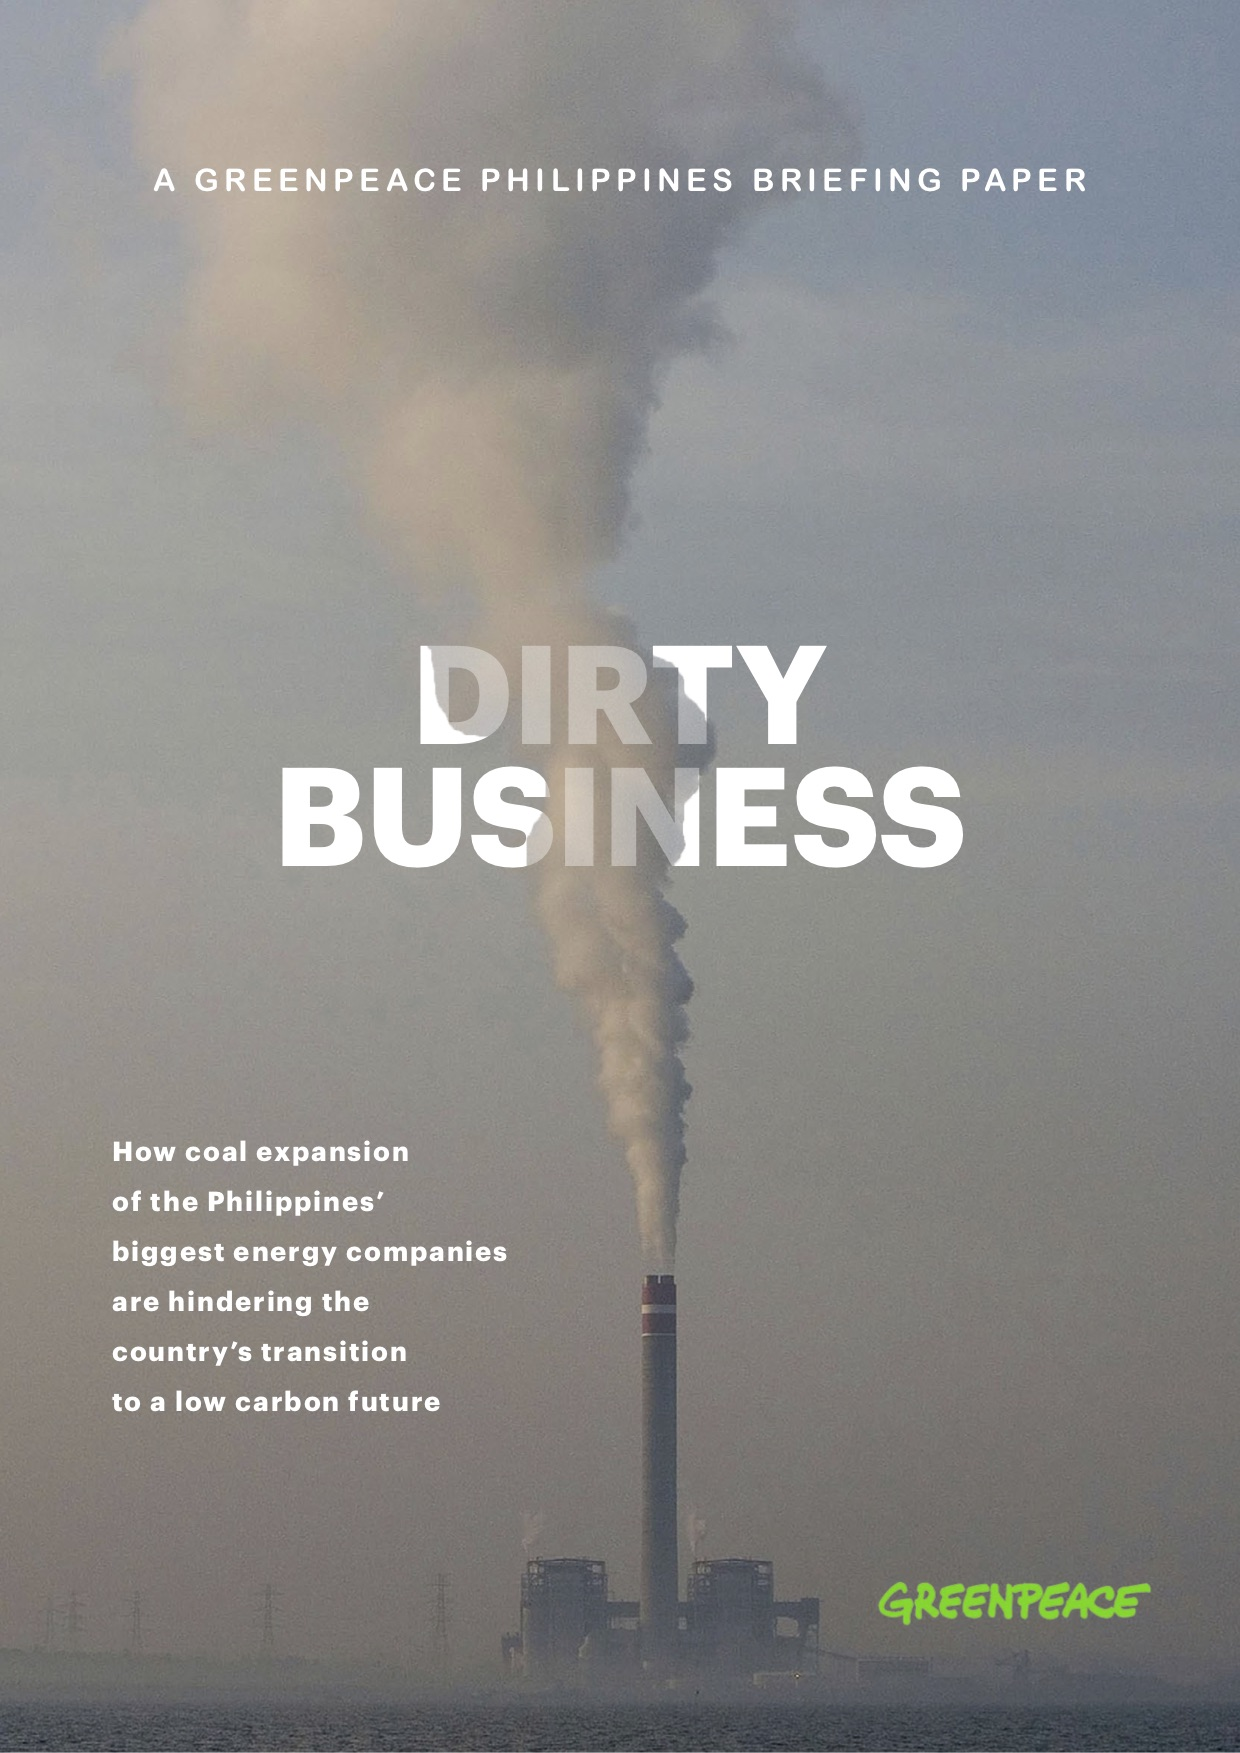 Dirty Business: How coal expansion of the Philippines' biggest energy companies are hindering the country's transition to a low carbon future